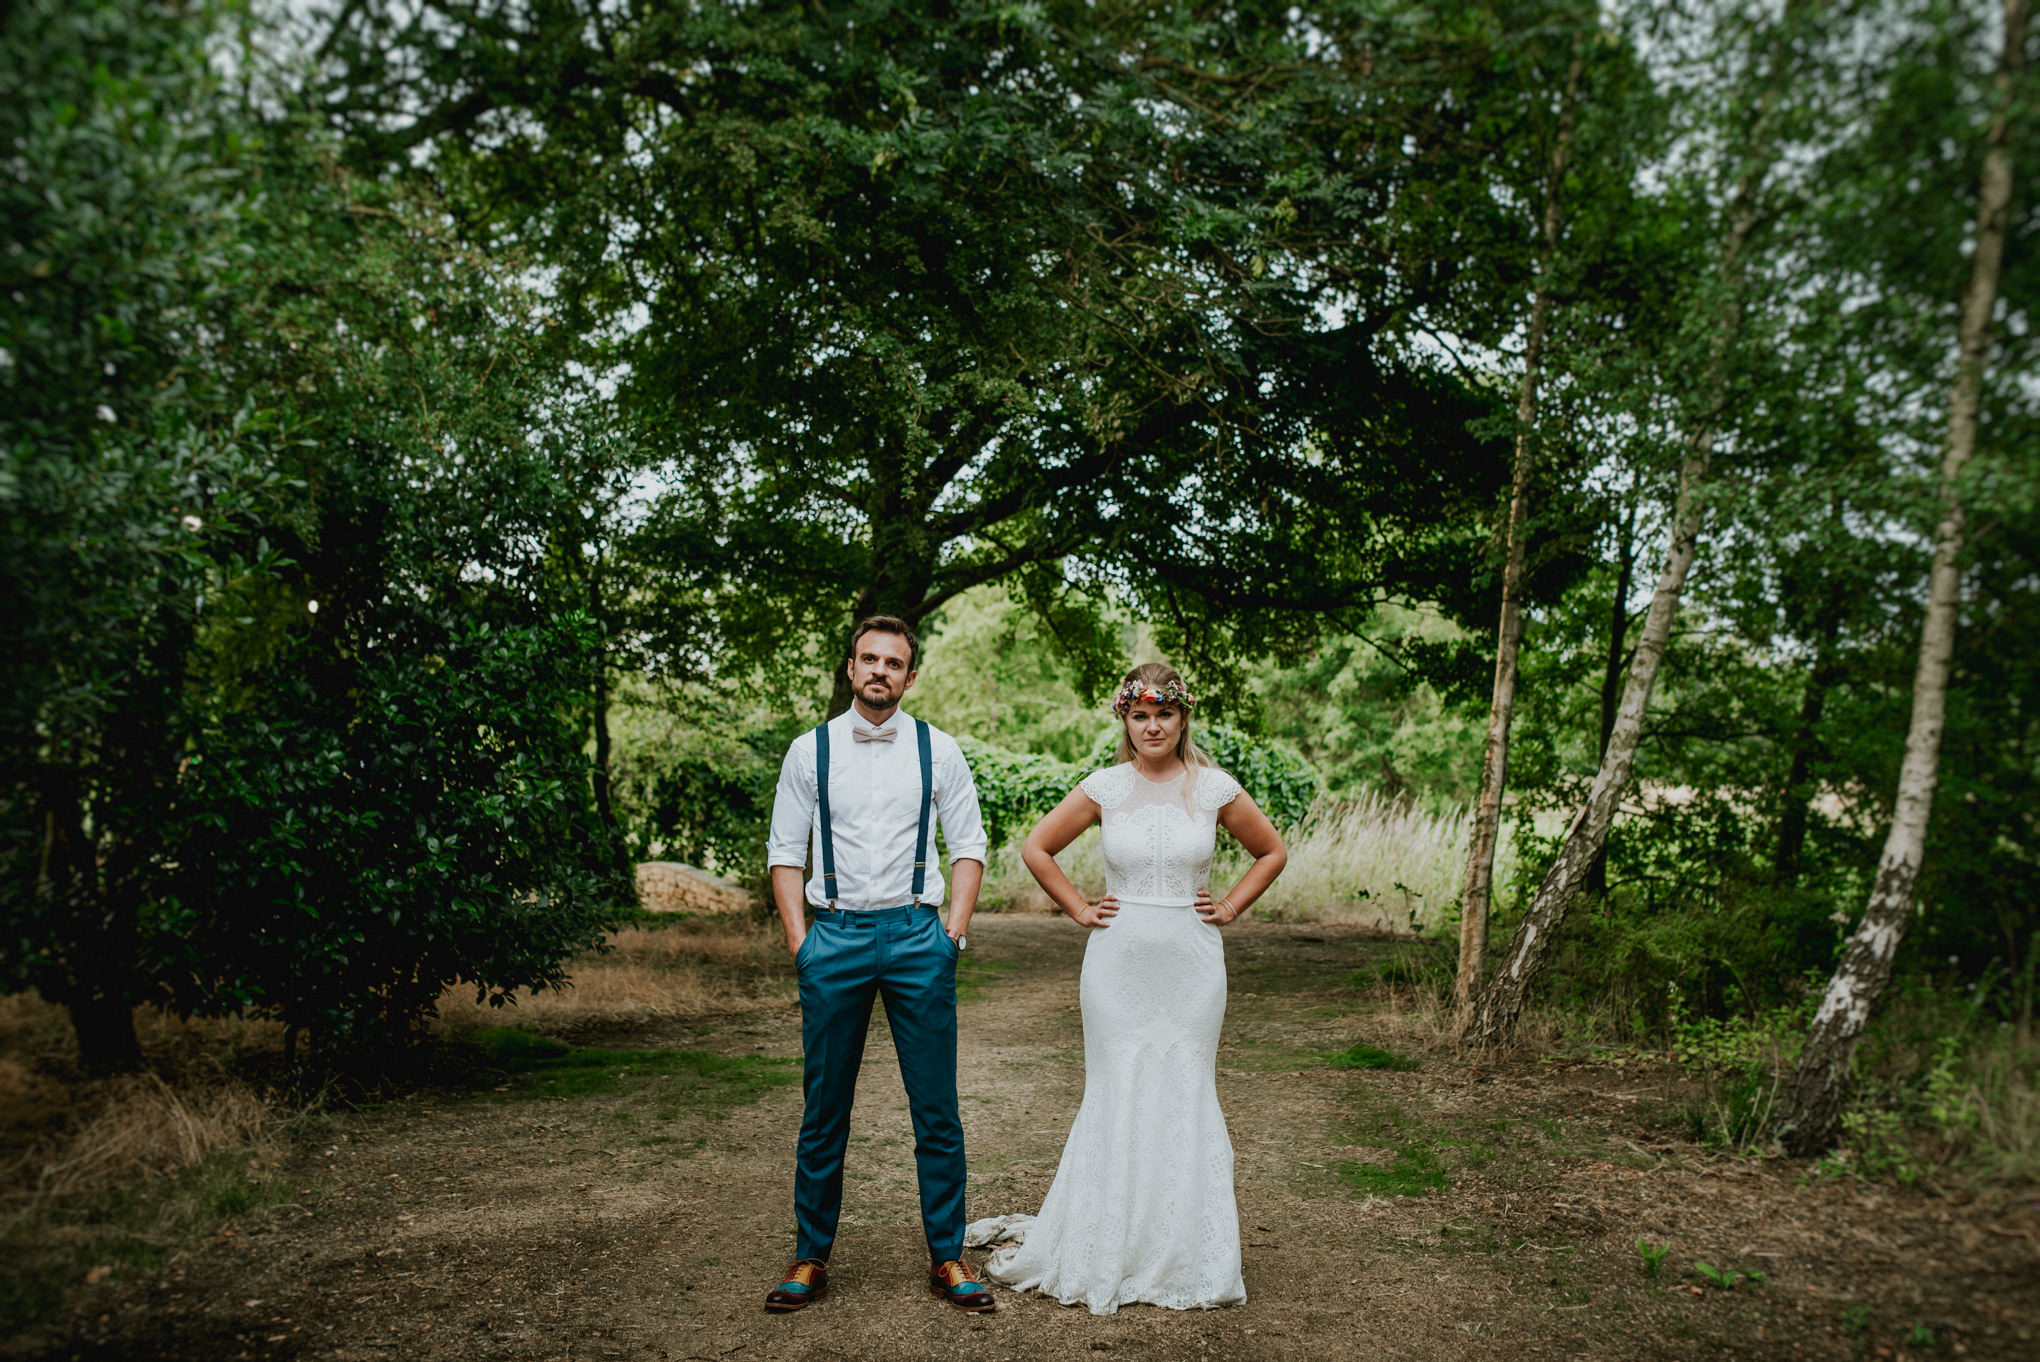 The Granary Deeping wedding